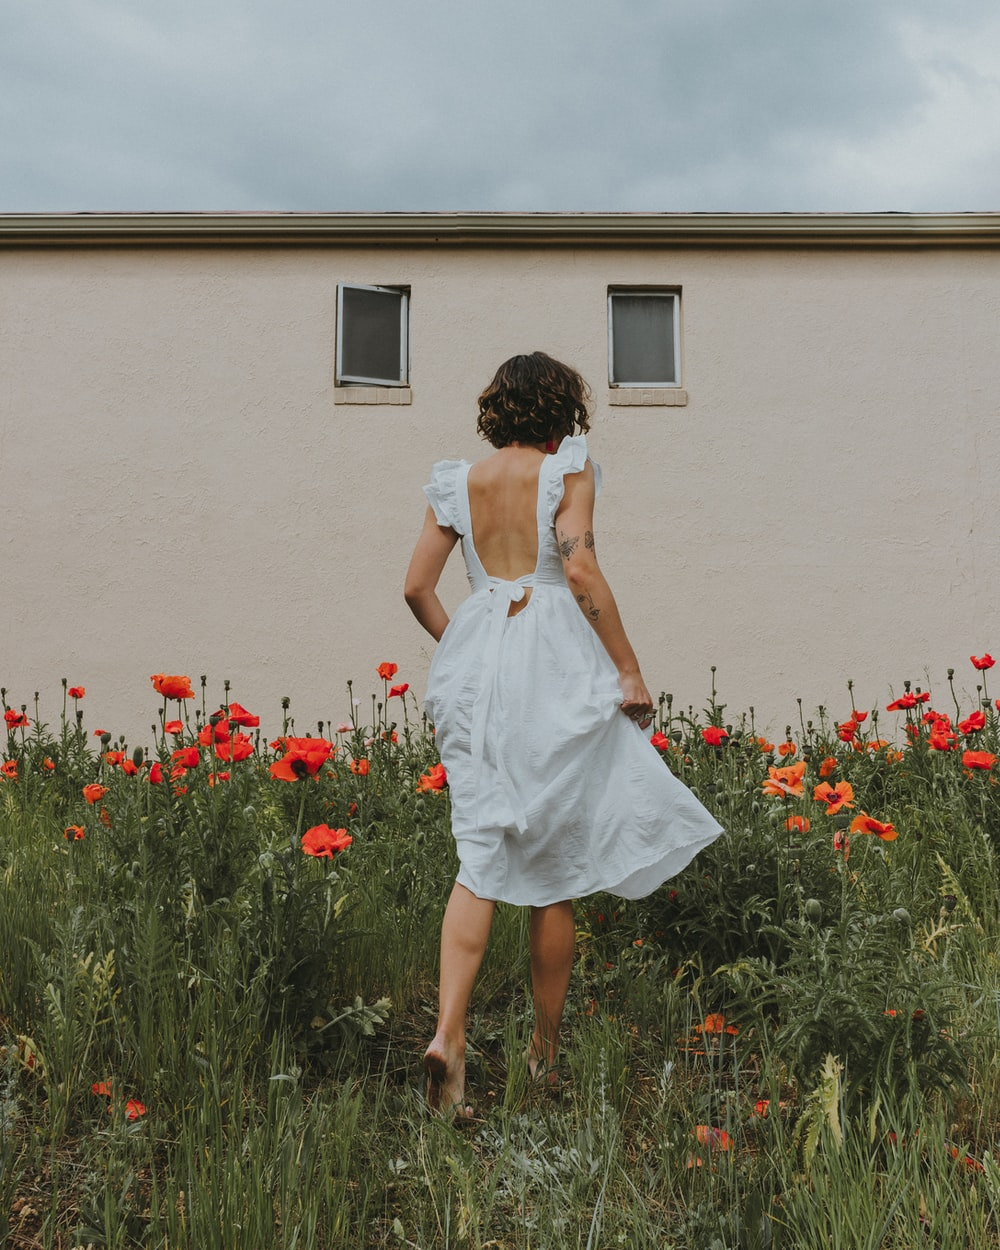 woman in white dress standing in front of red flowers